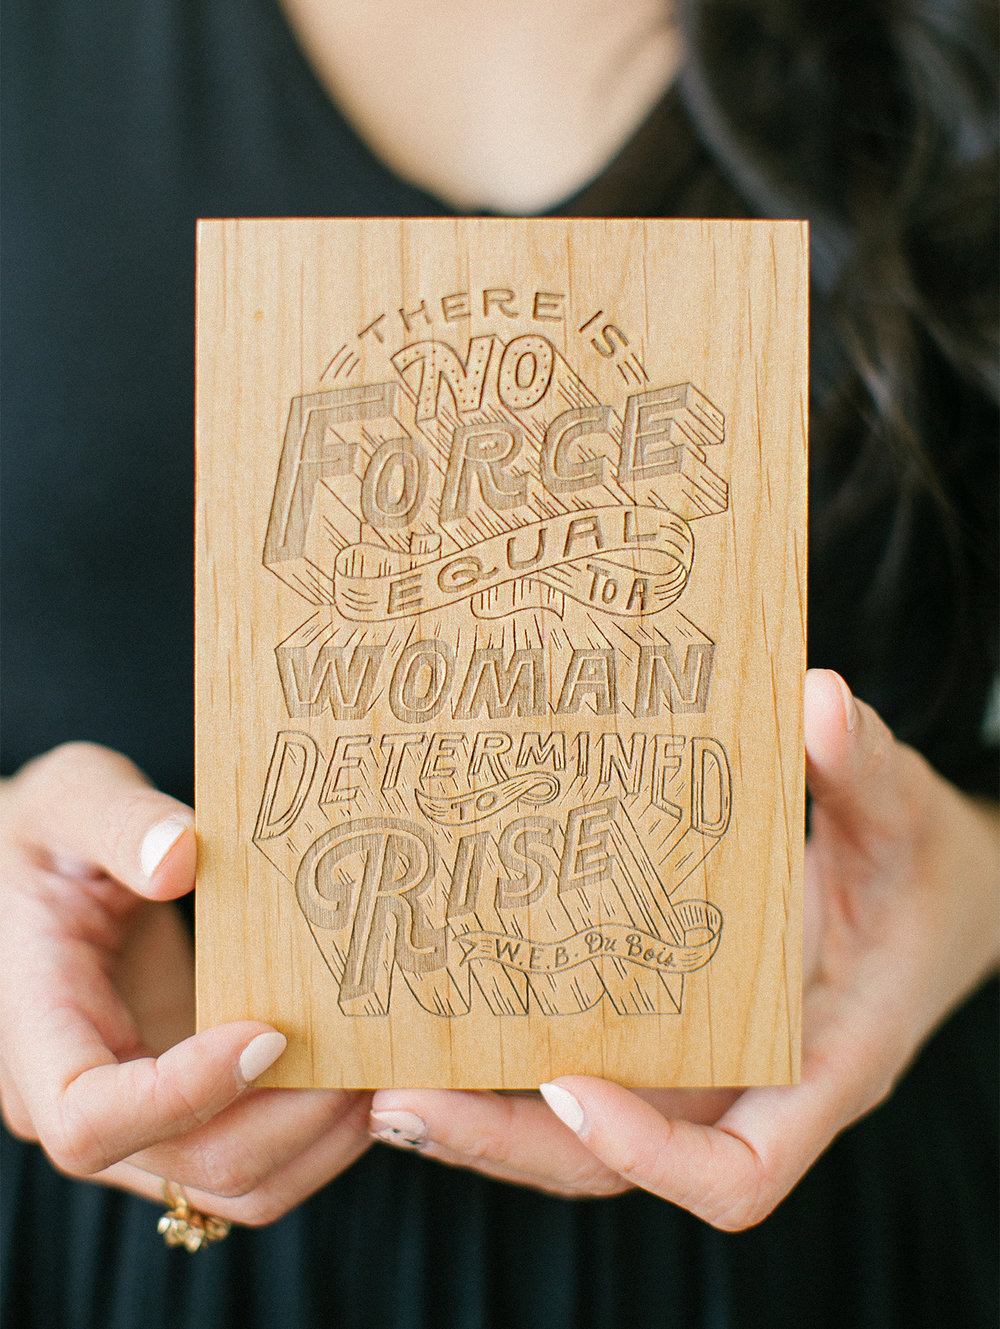 """There is no force equal to a woman determined to rise."" - W.E.B. Du Bois 